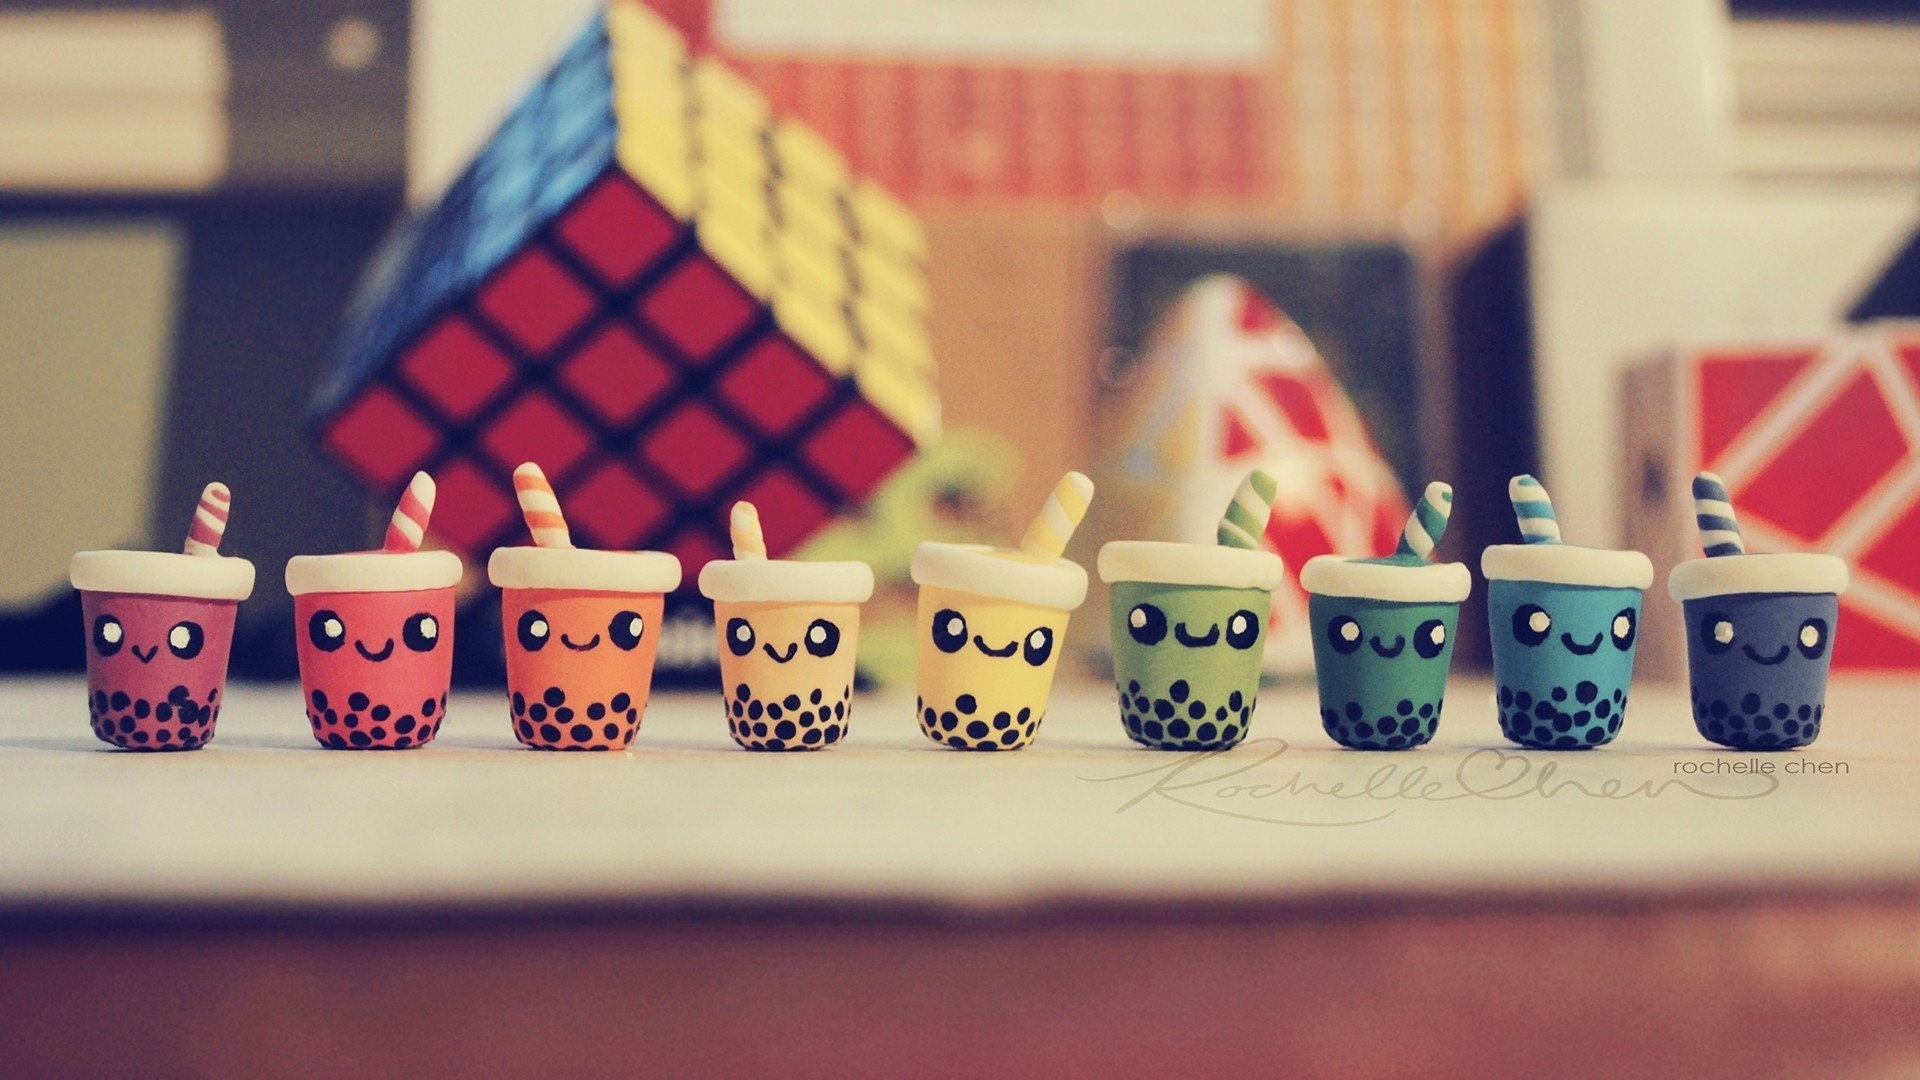 mood drink mugs tube cocktail faces smile rubik's cube toys positive bright  background wallpaper